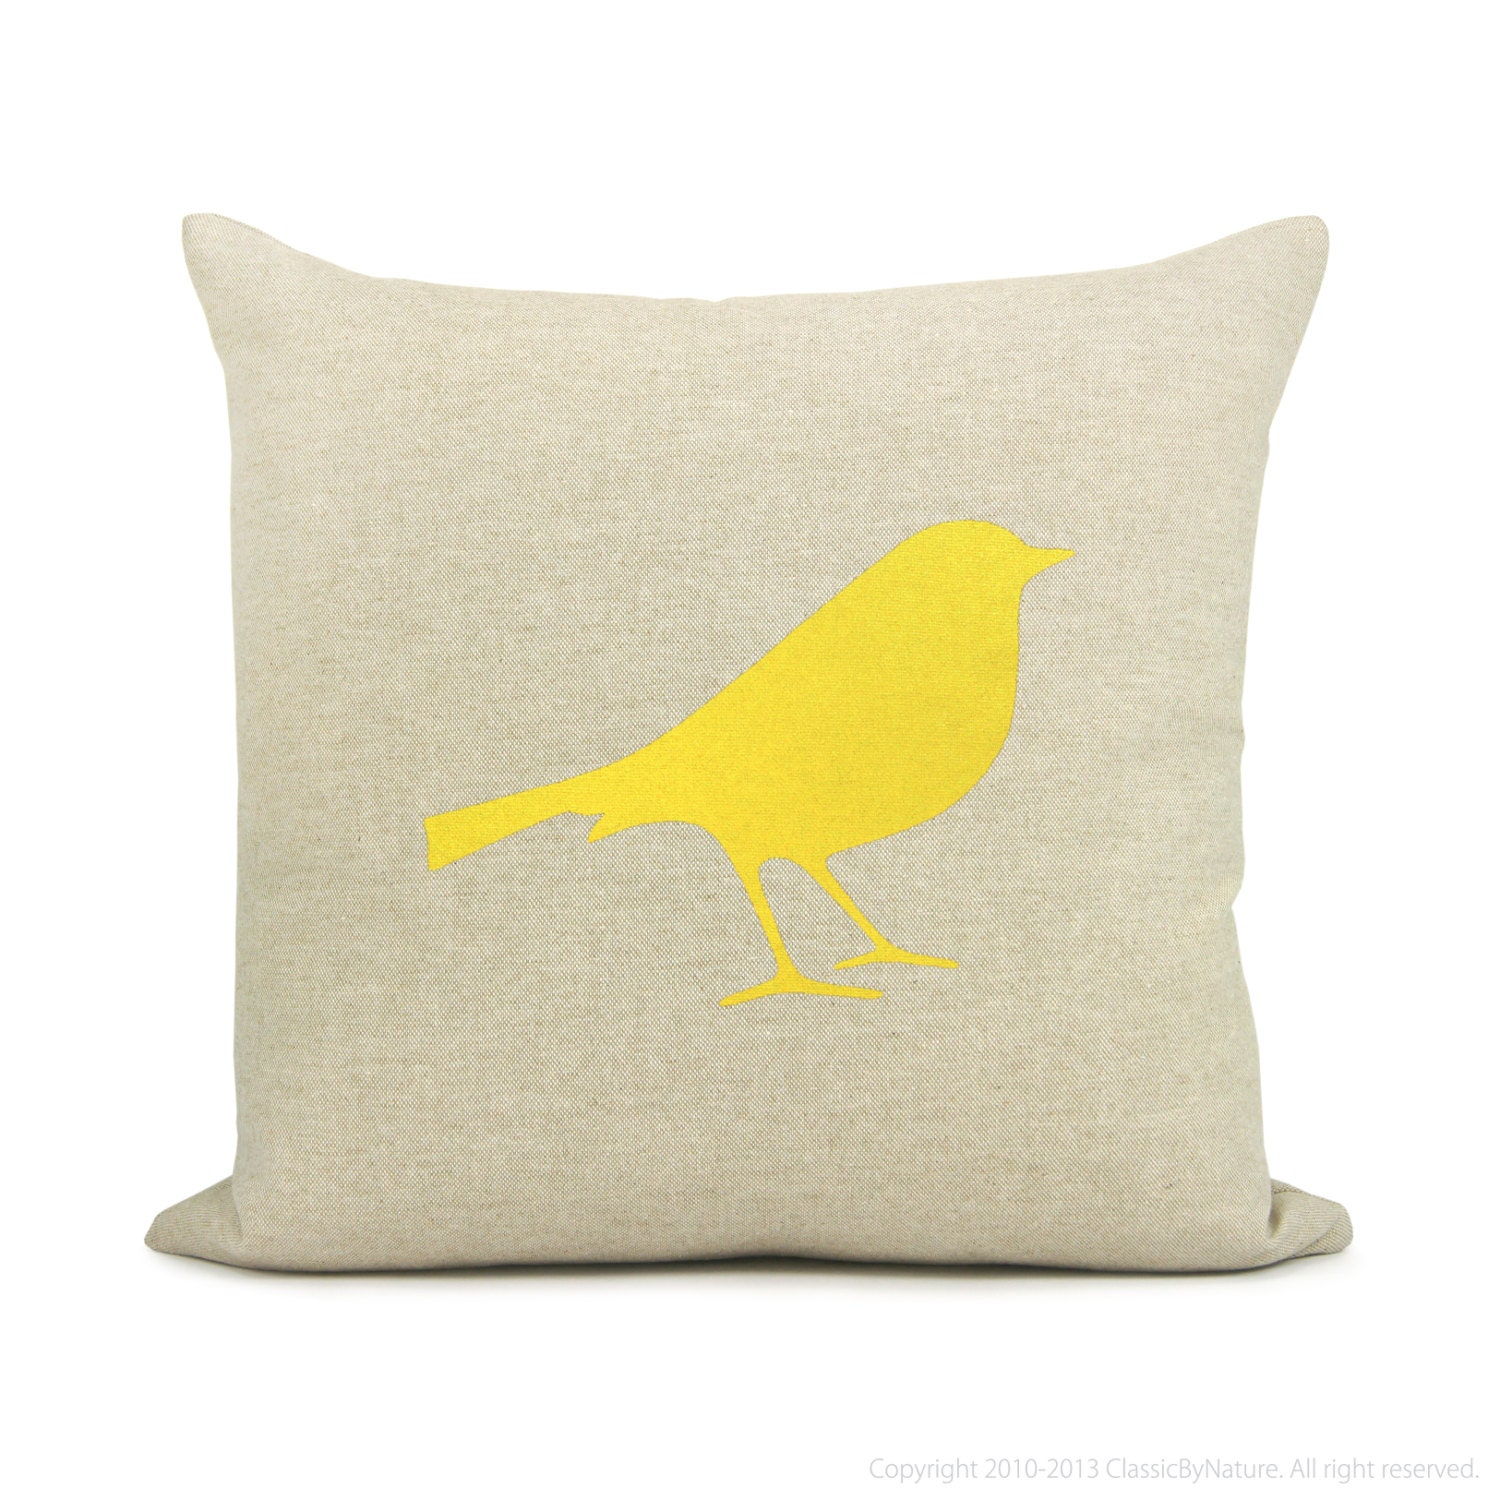 Throw Pillows With Covers : Kitchen & Dining